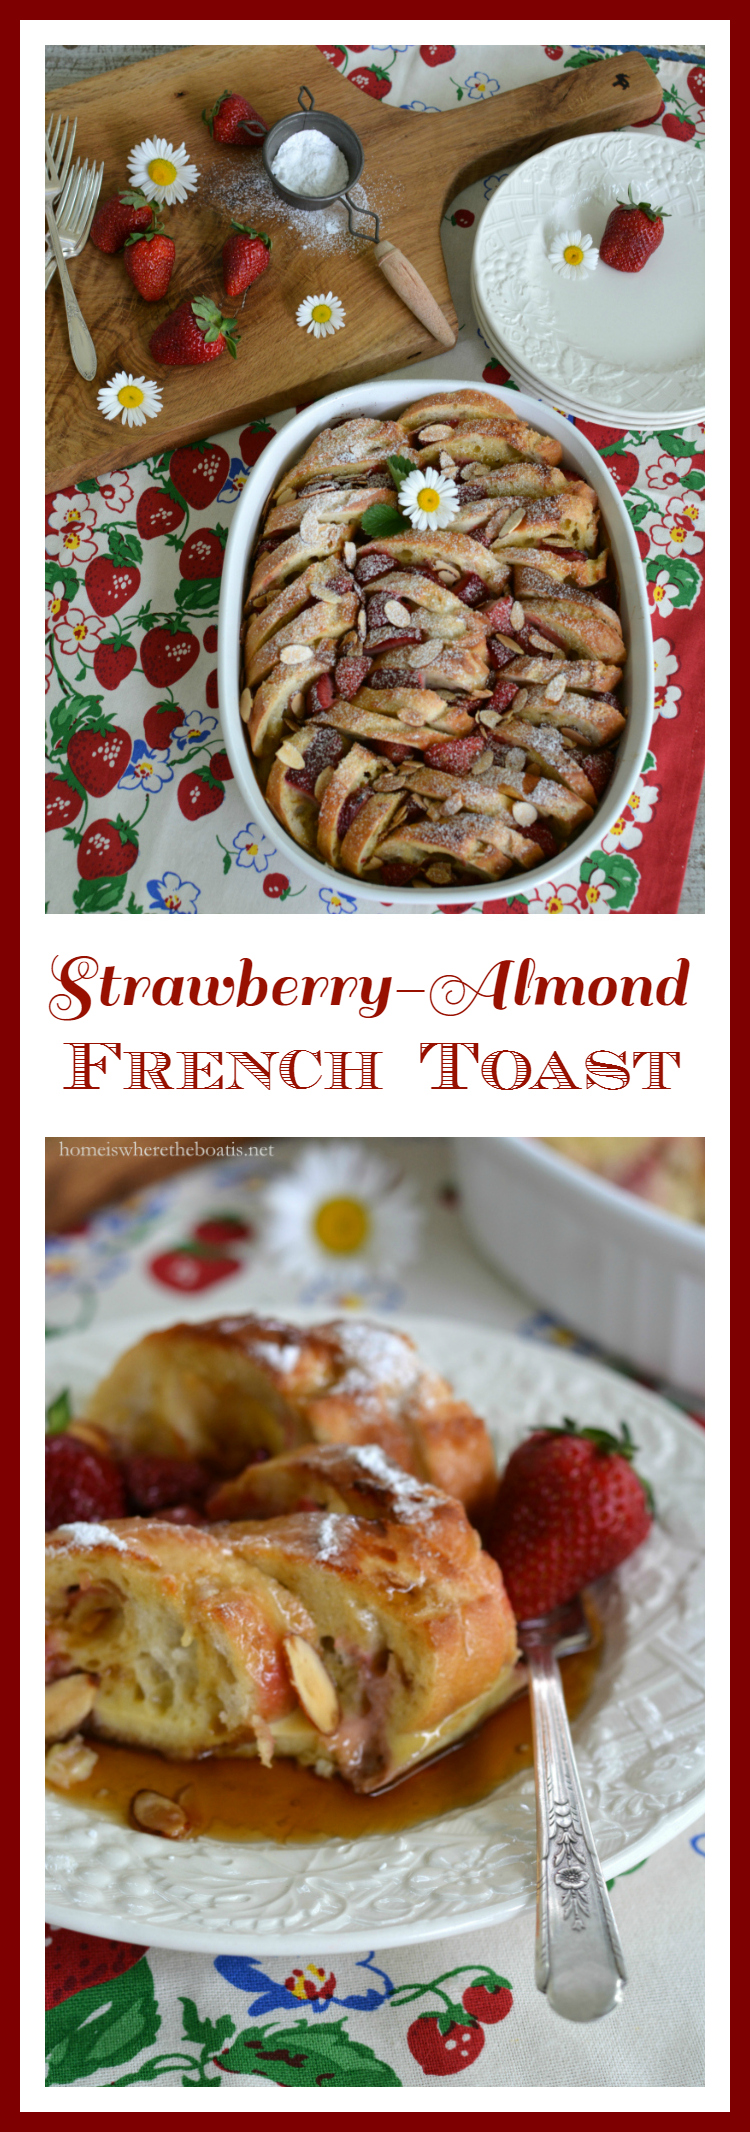 Strawberry-Almond French Toast